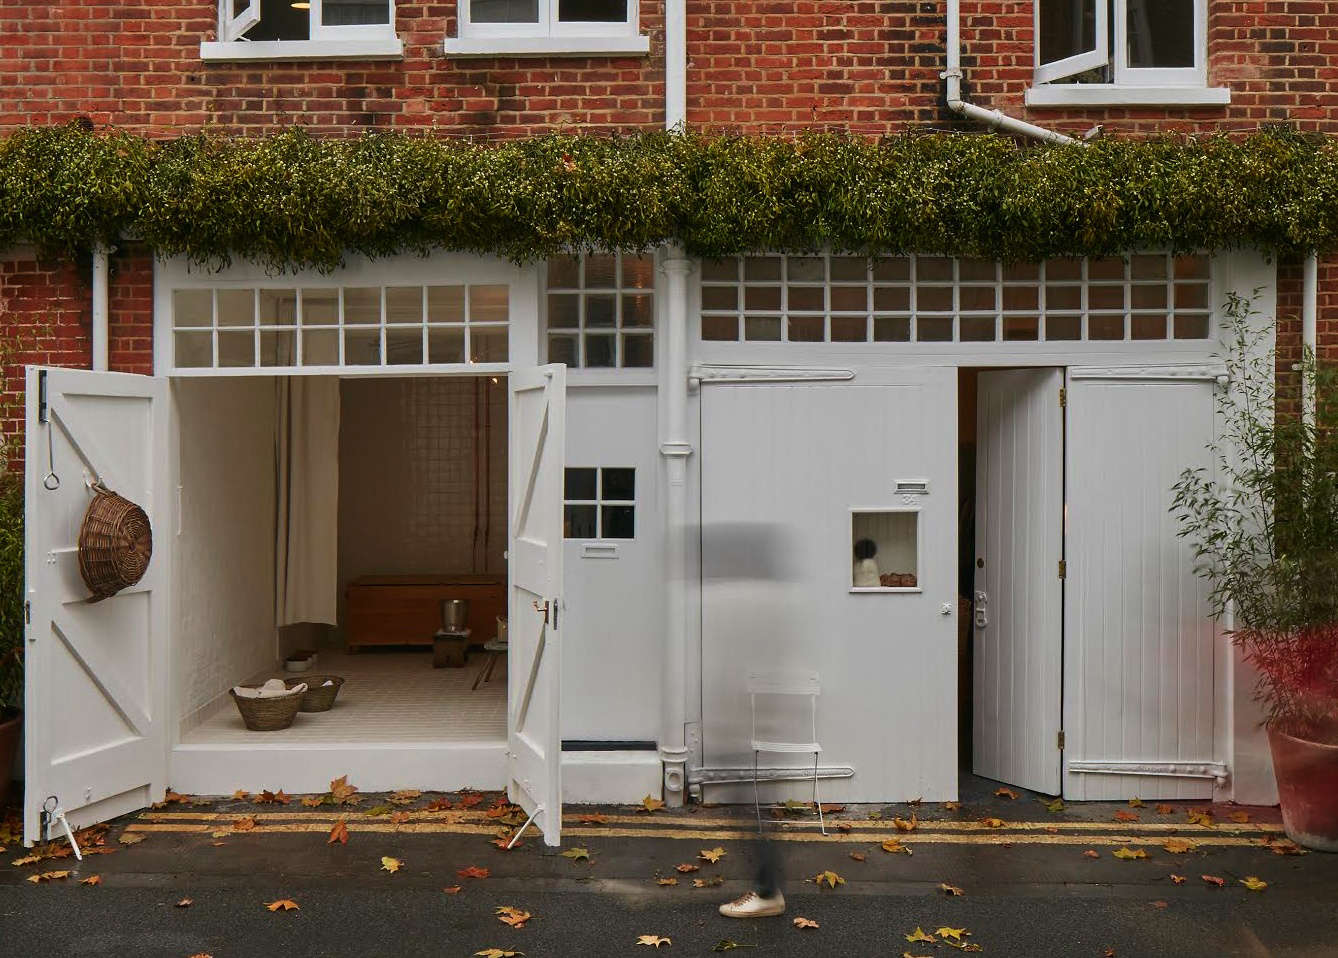 An Urban Hut in London by Jonathan Tuckey for an Under-the-Radar Design Doyenne